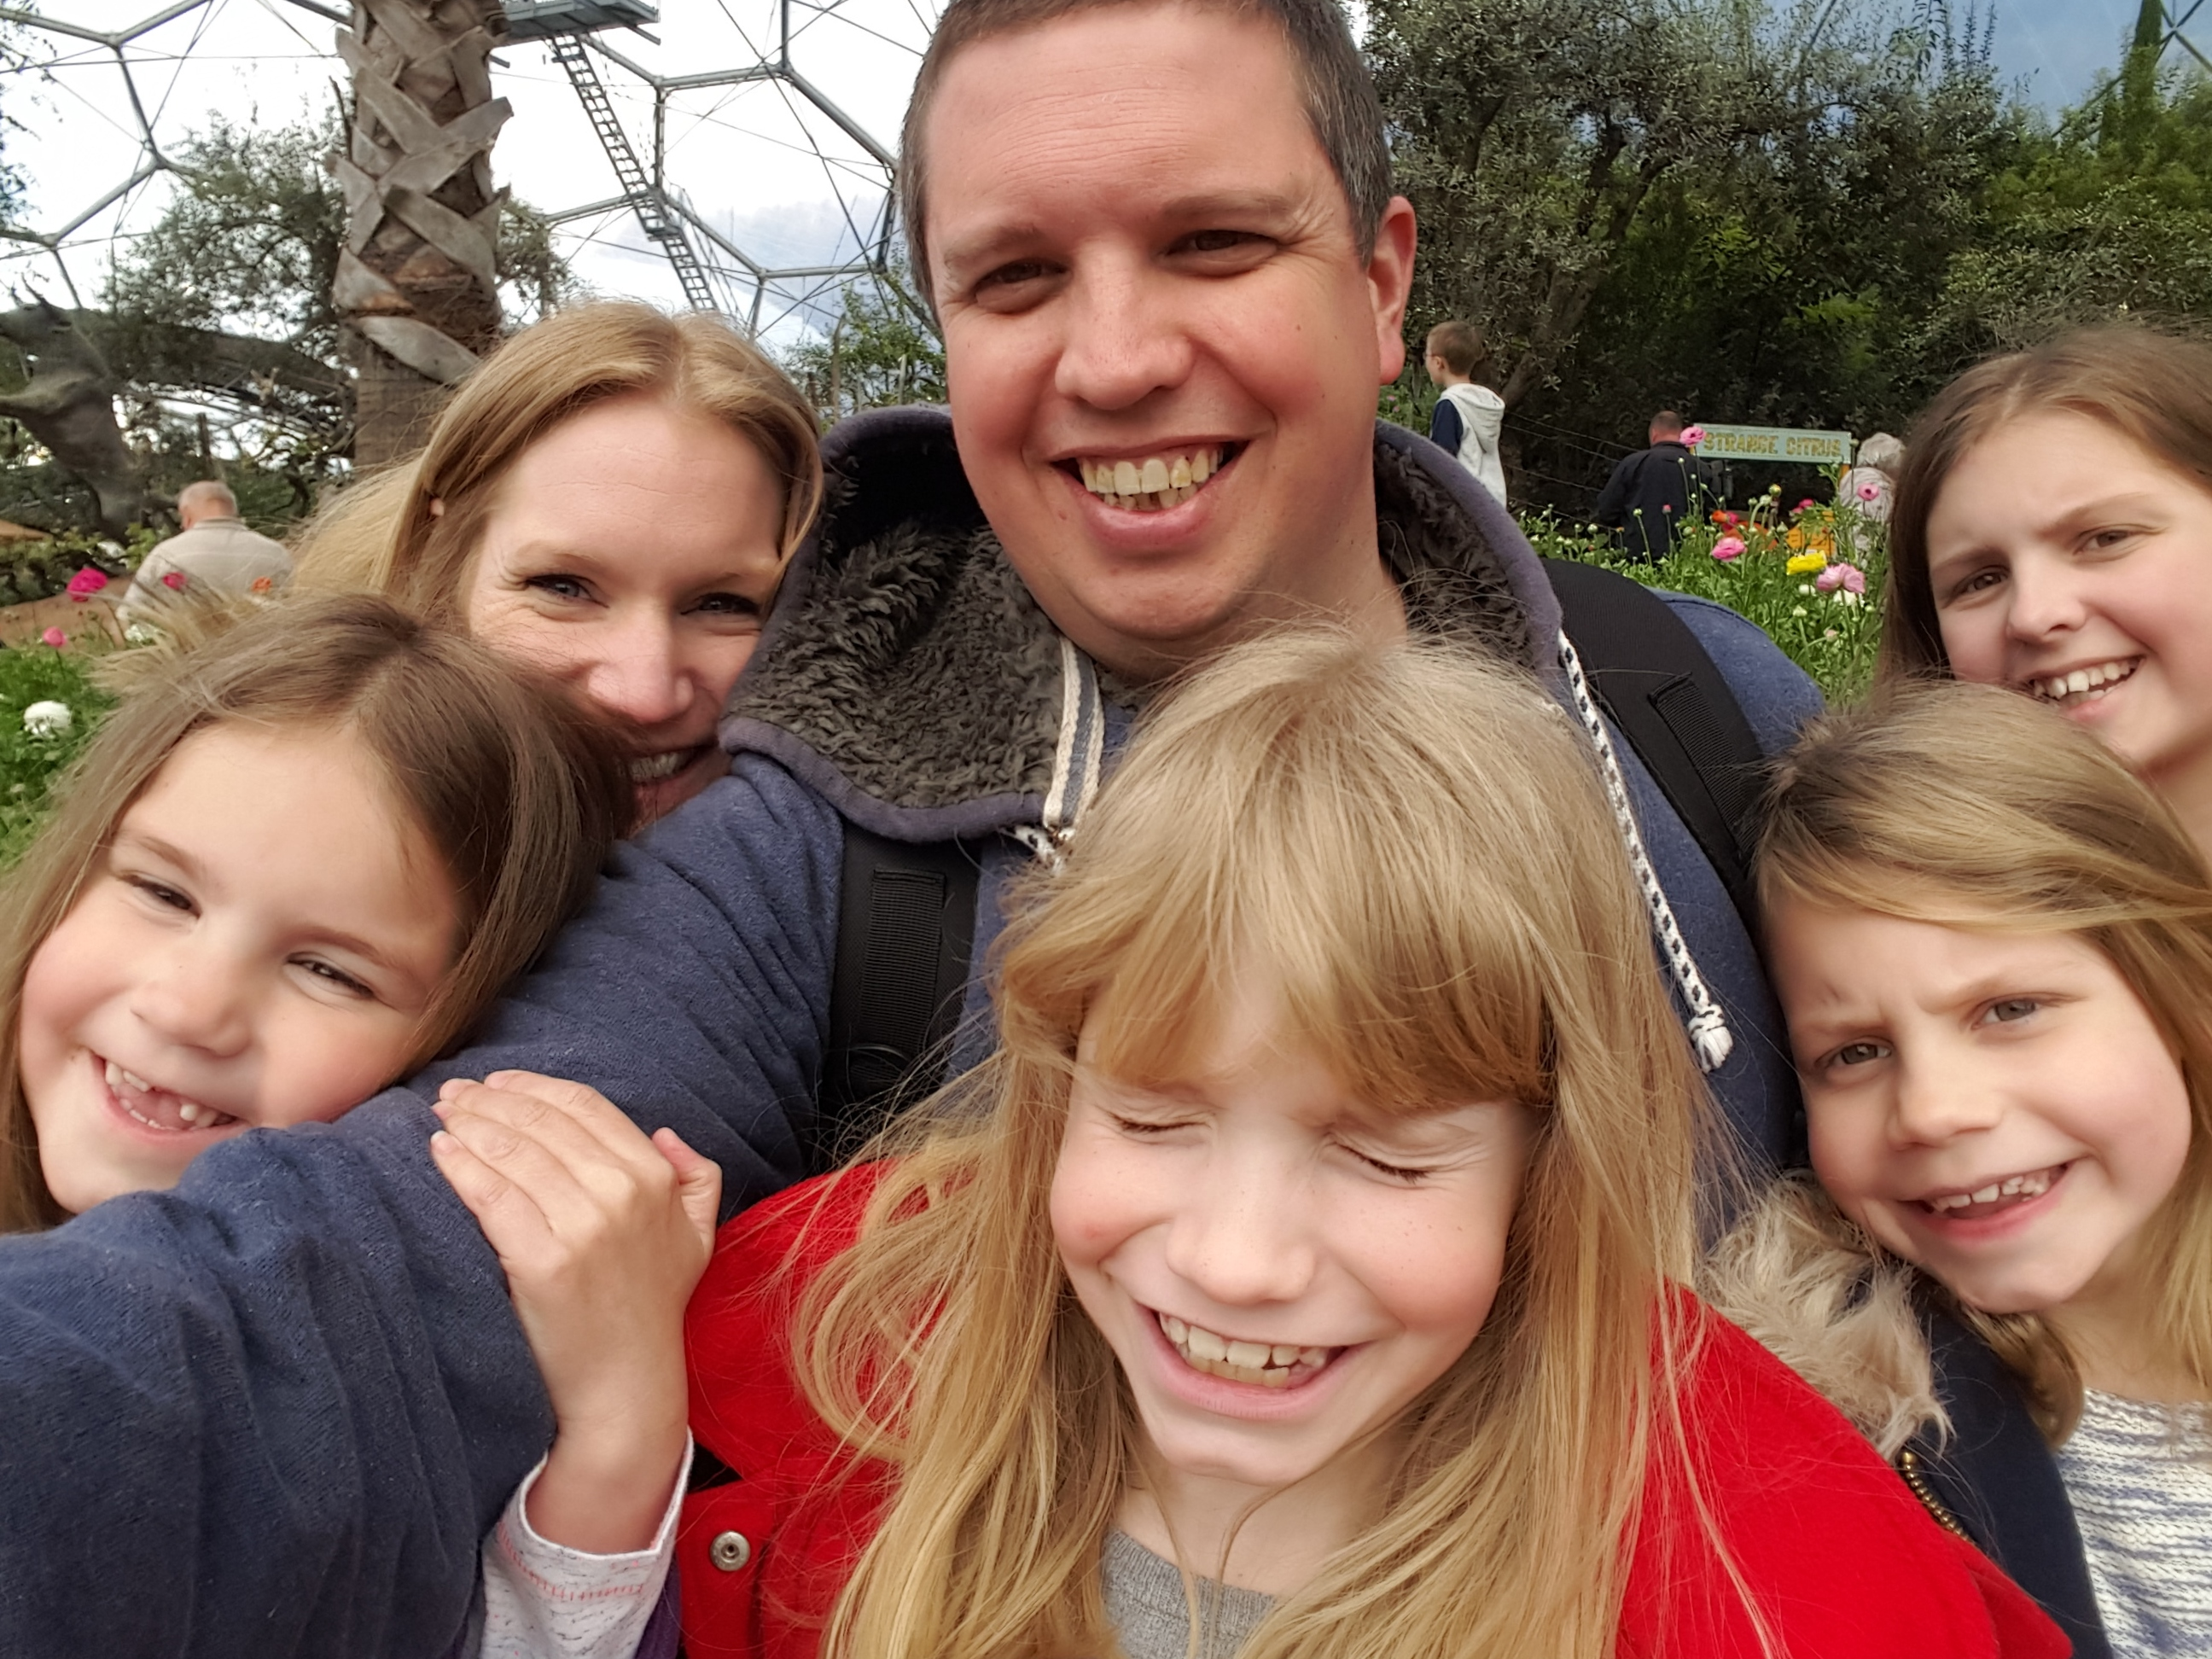 The only way we can get a photo of all six of us together is to take a selfie!